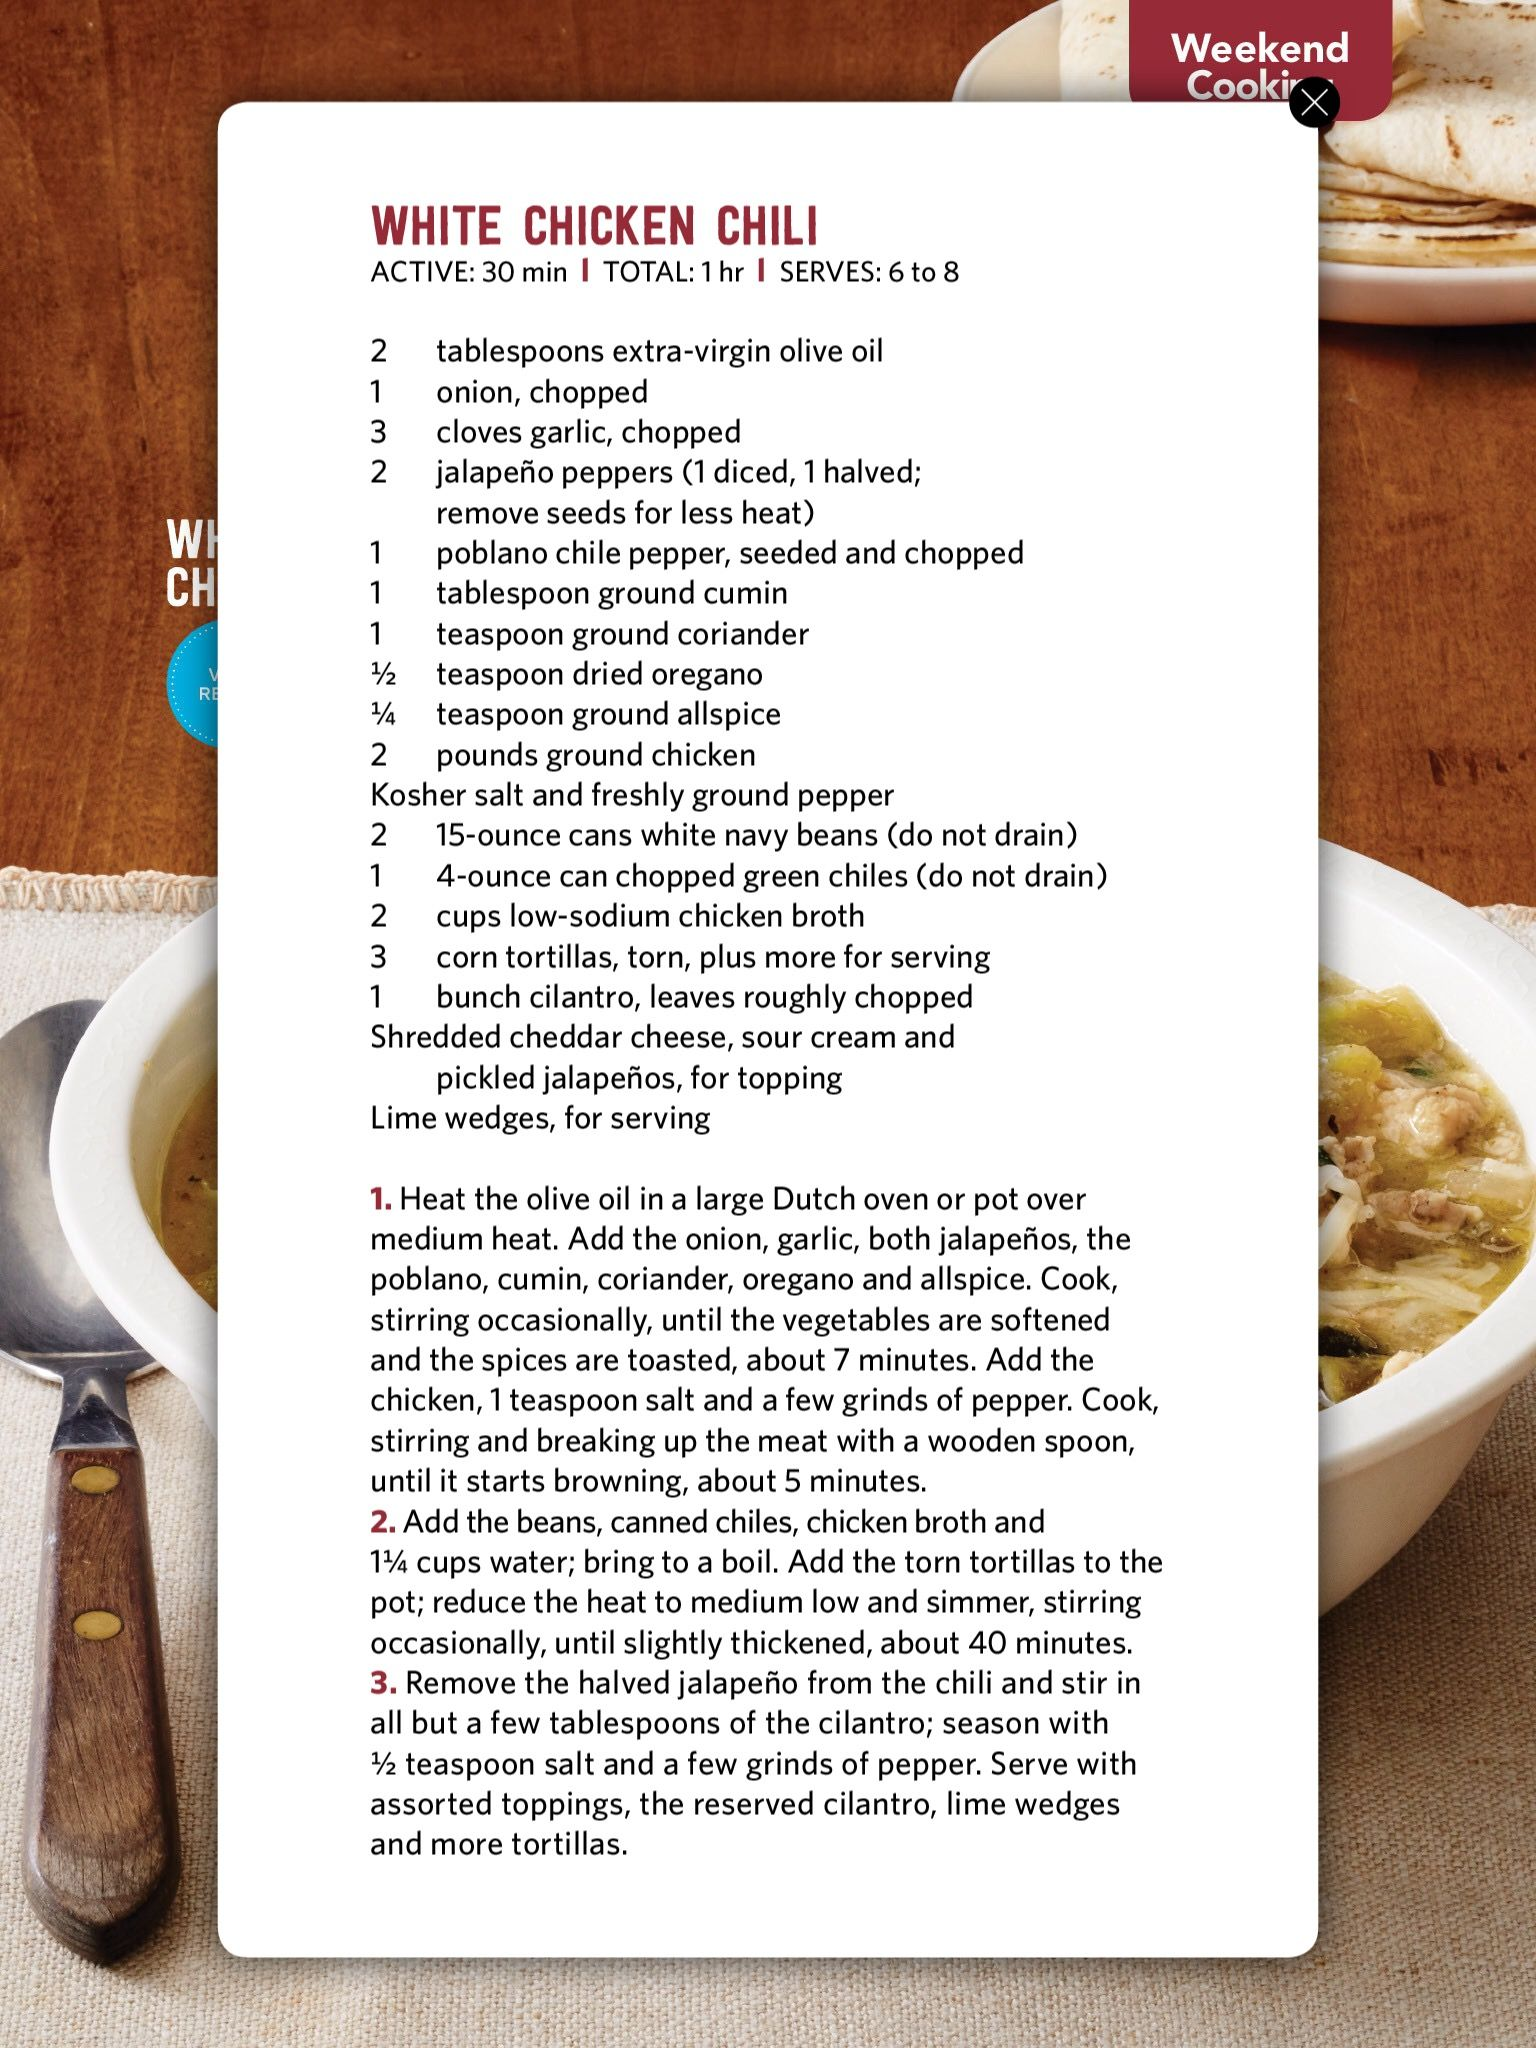 Pin by alison oconnor on food pinterest foods white bean chili white chicken chili white beans magazine stew food networktrisha recipe cards chilis salad recipes forumfinder Choice Image